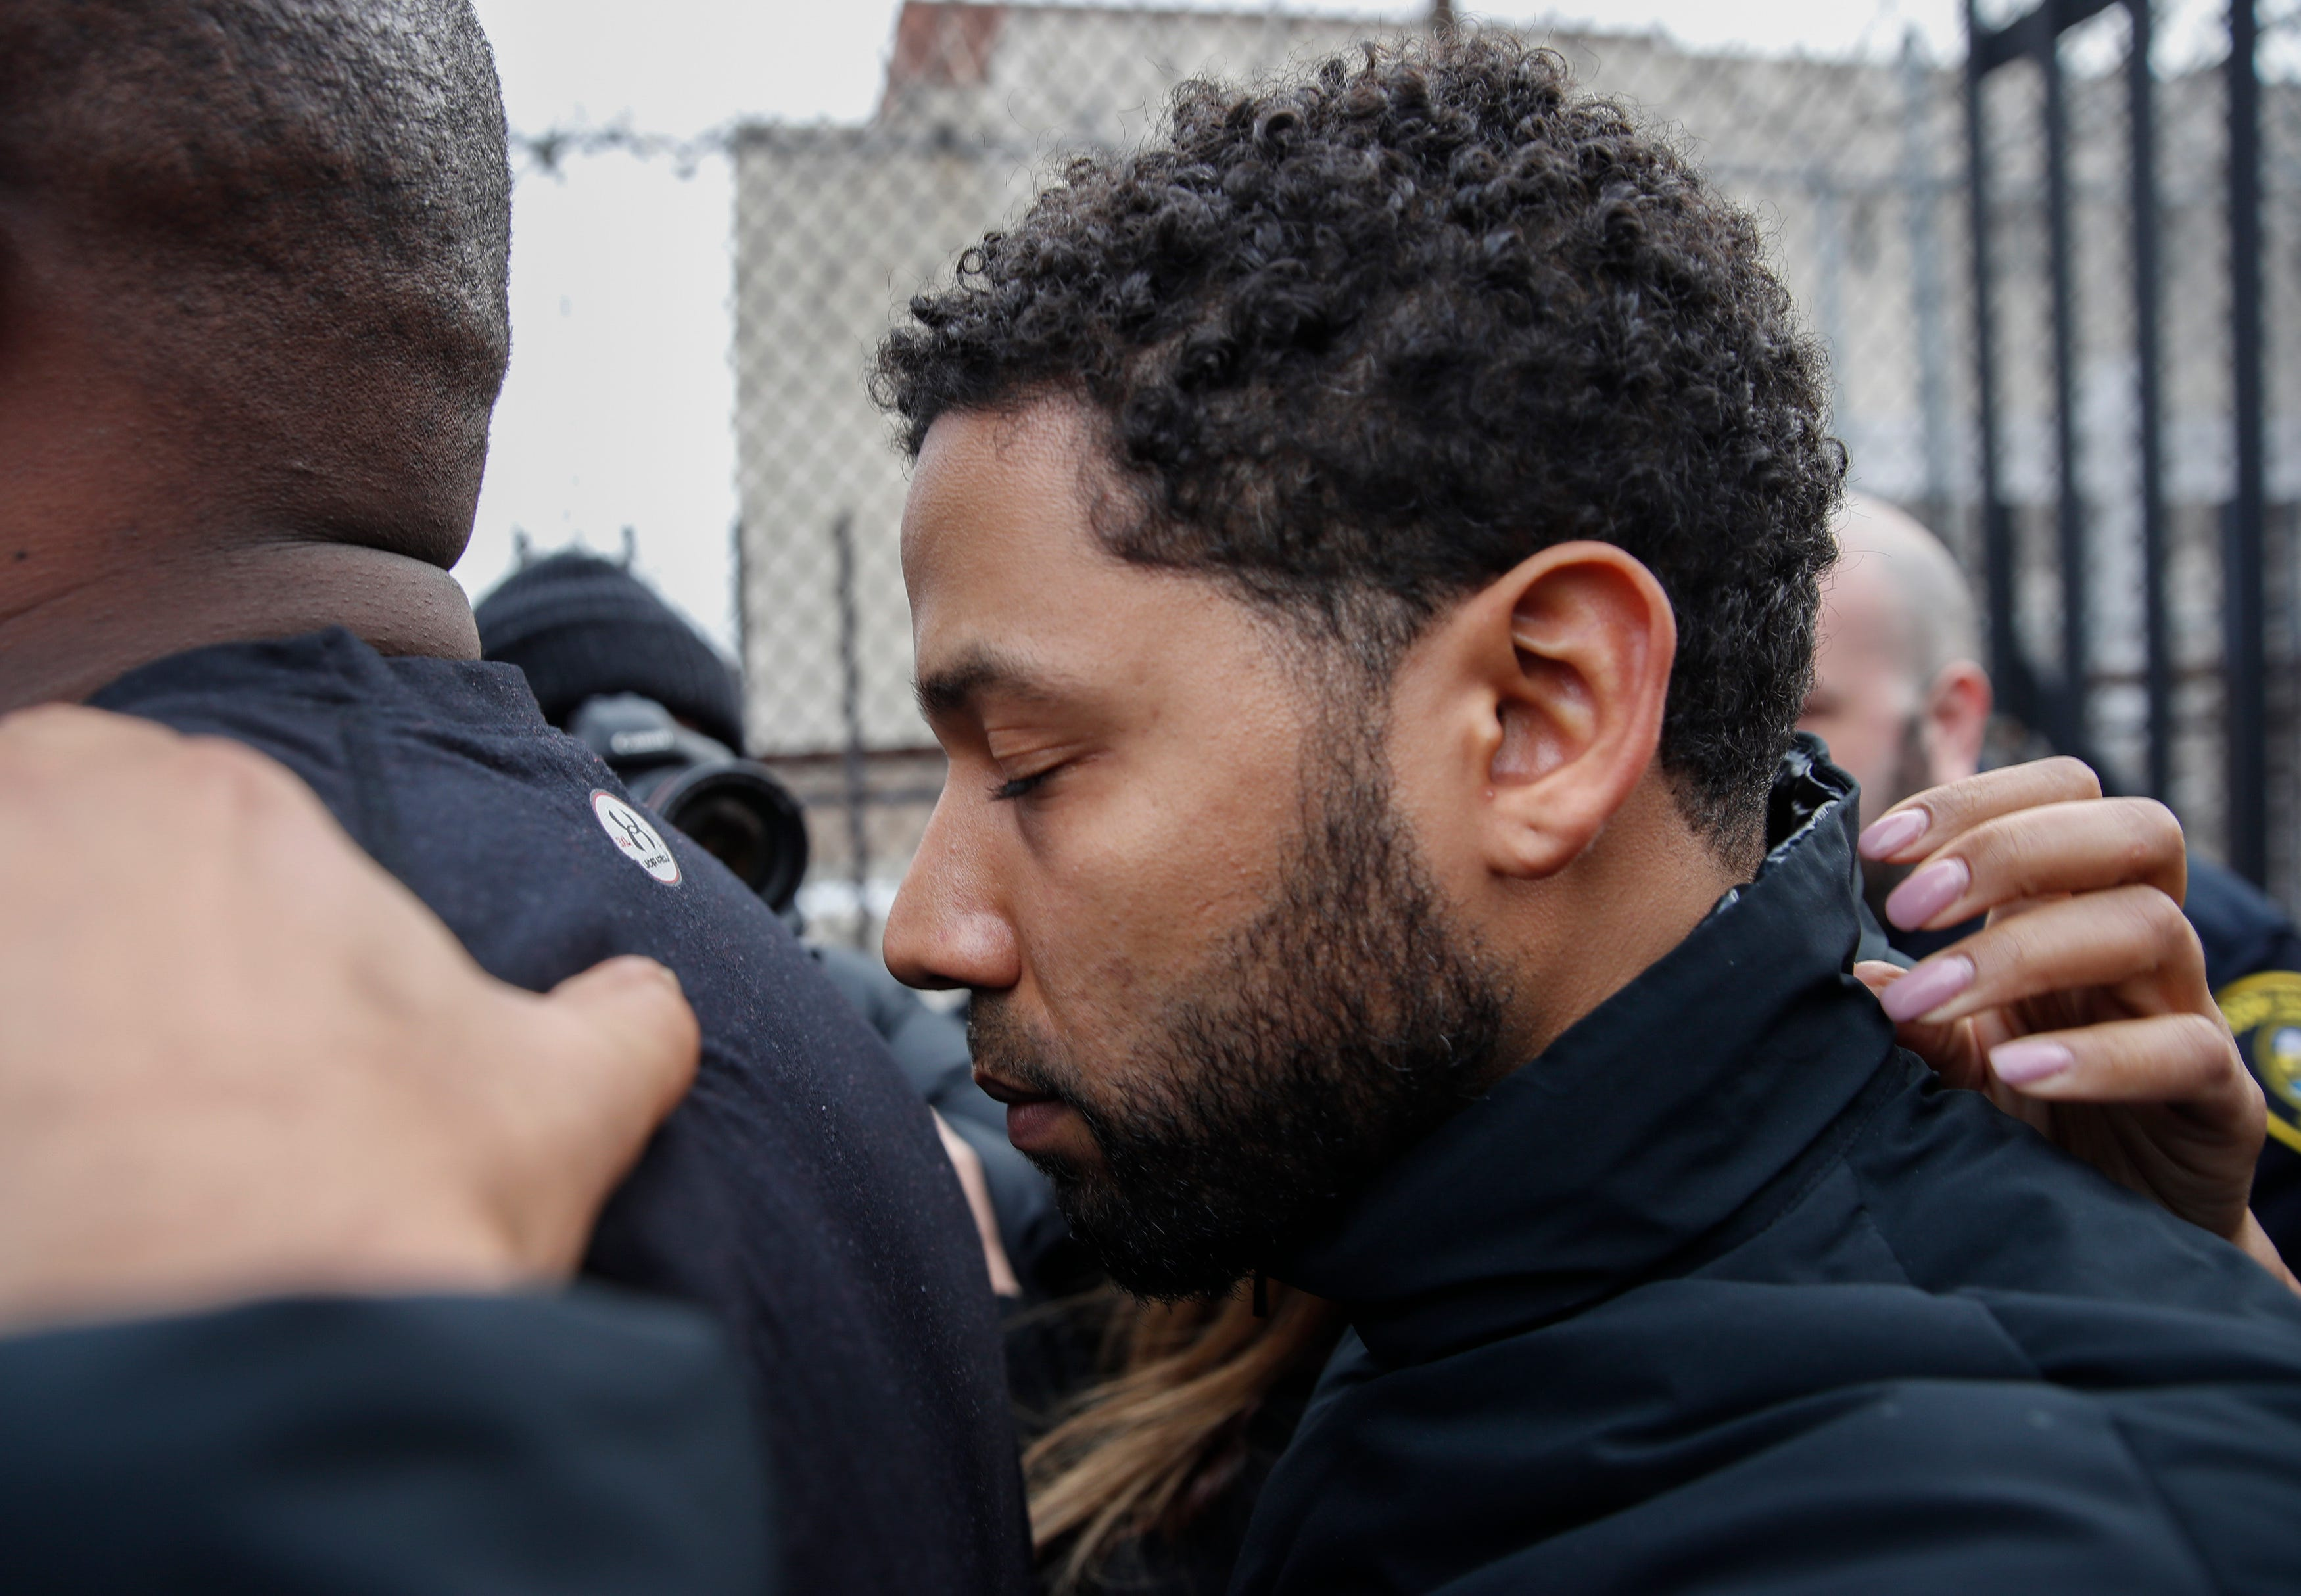 Jussie Smollett deserves punishment for hate crime hoax, but he also deserves compassion